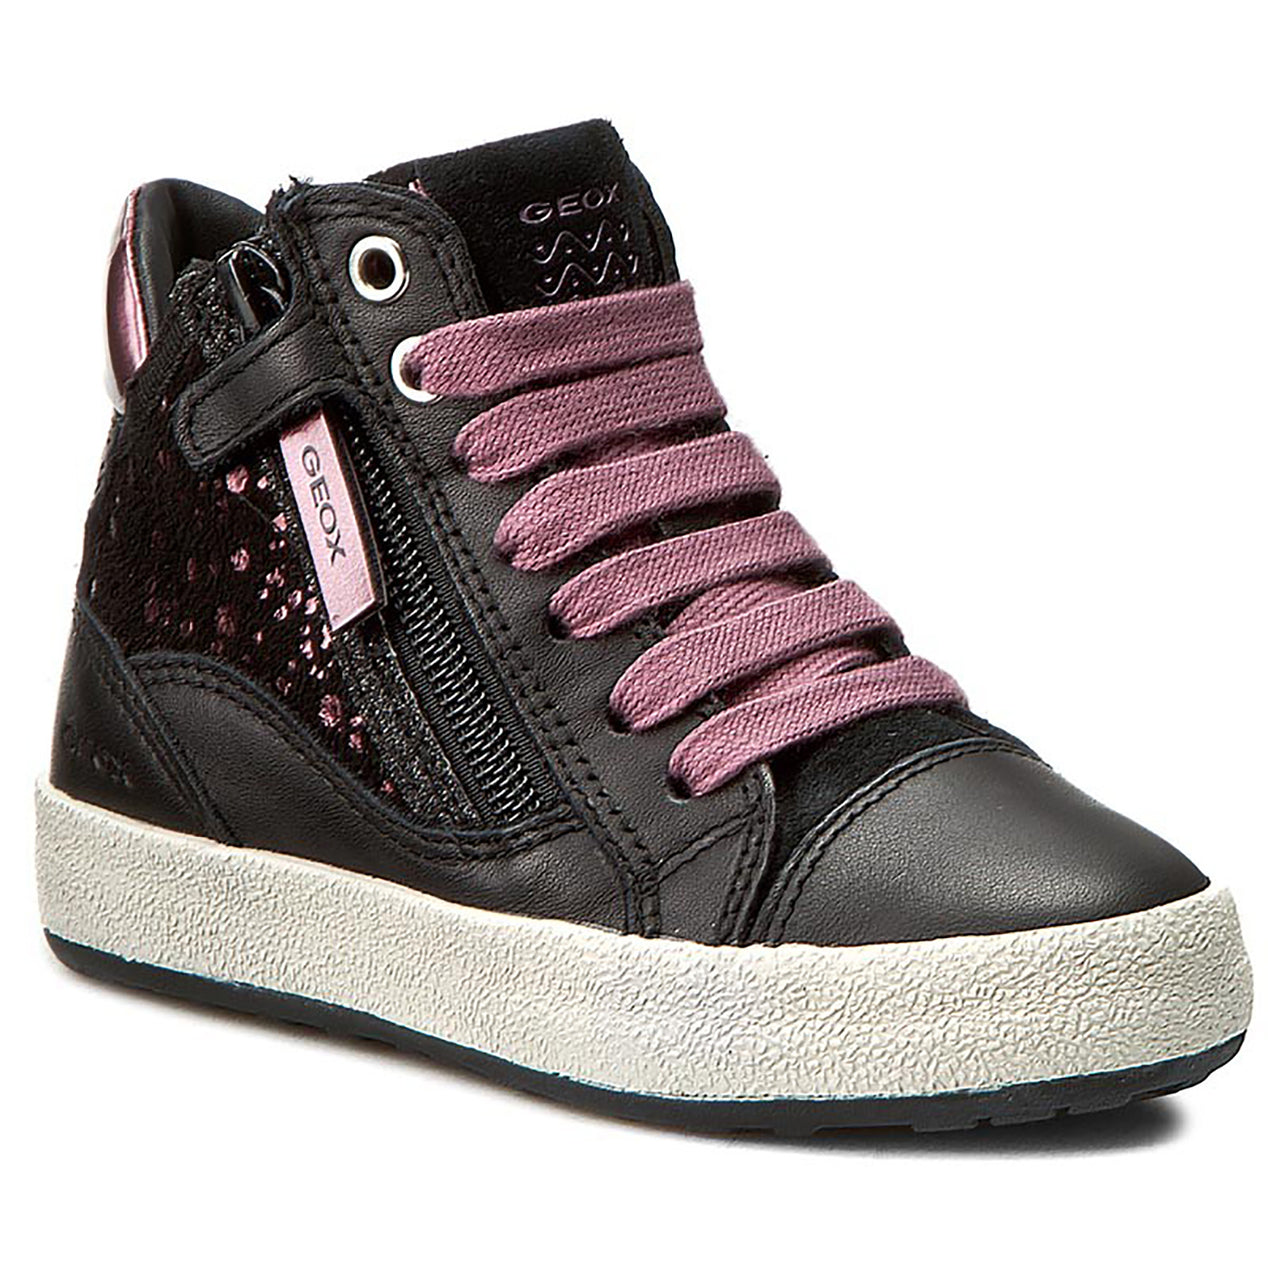 Geox Witty Sneakers Girls